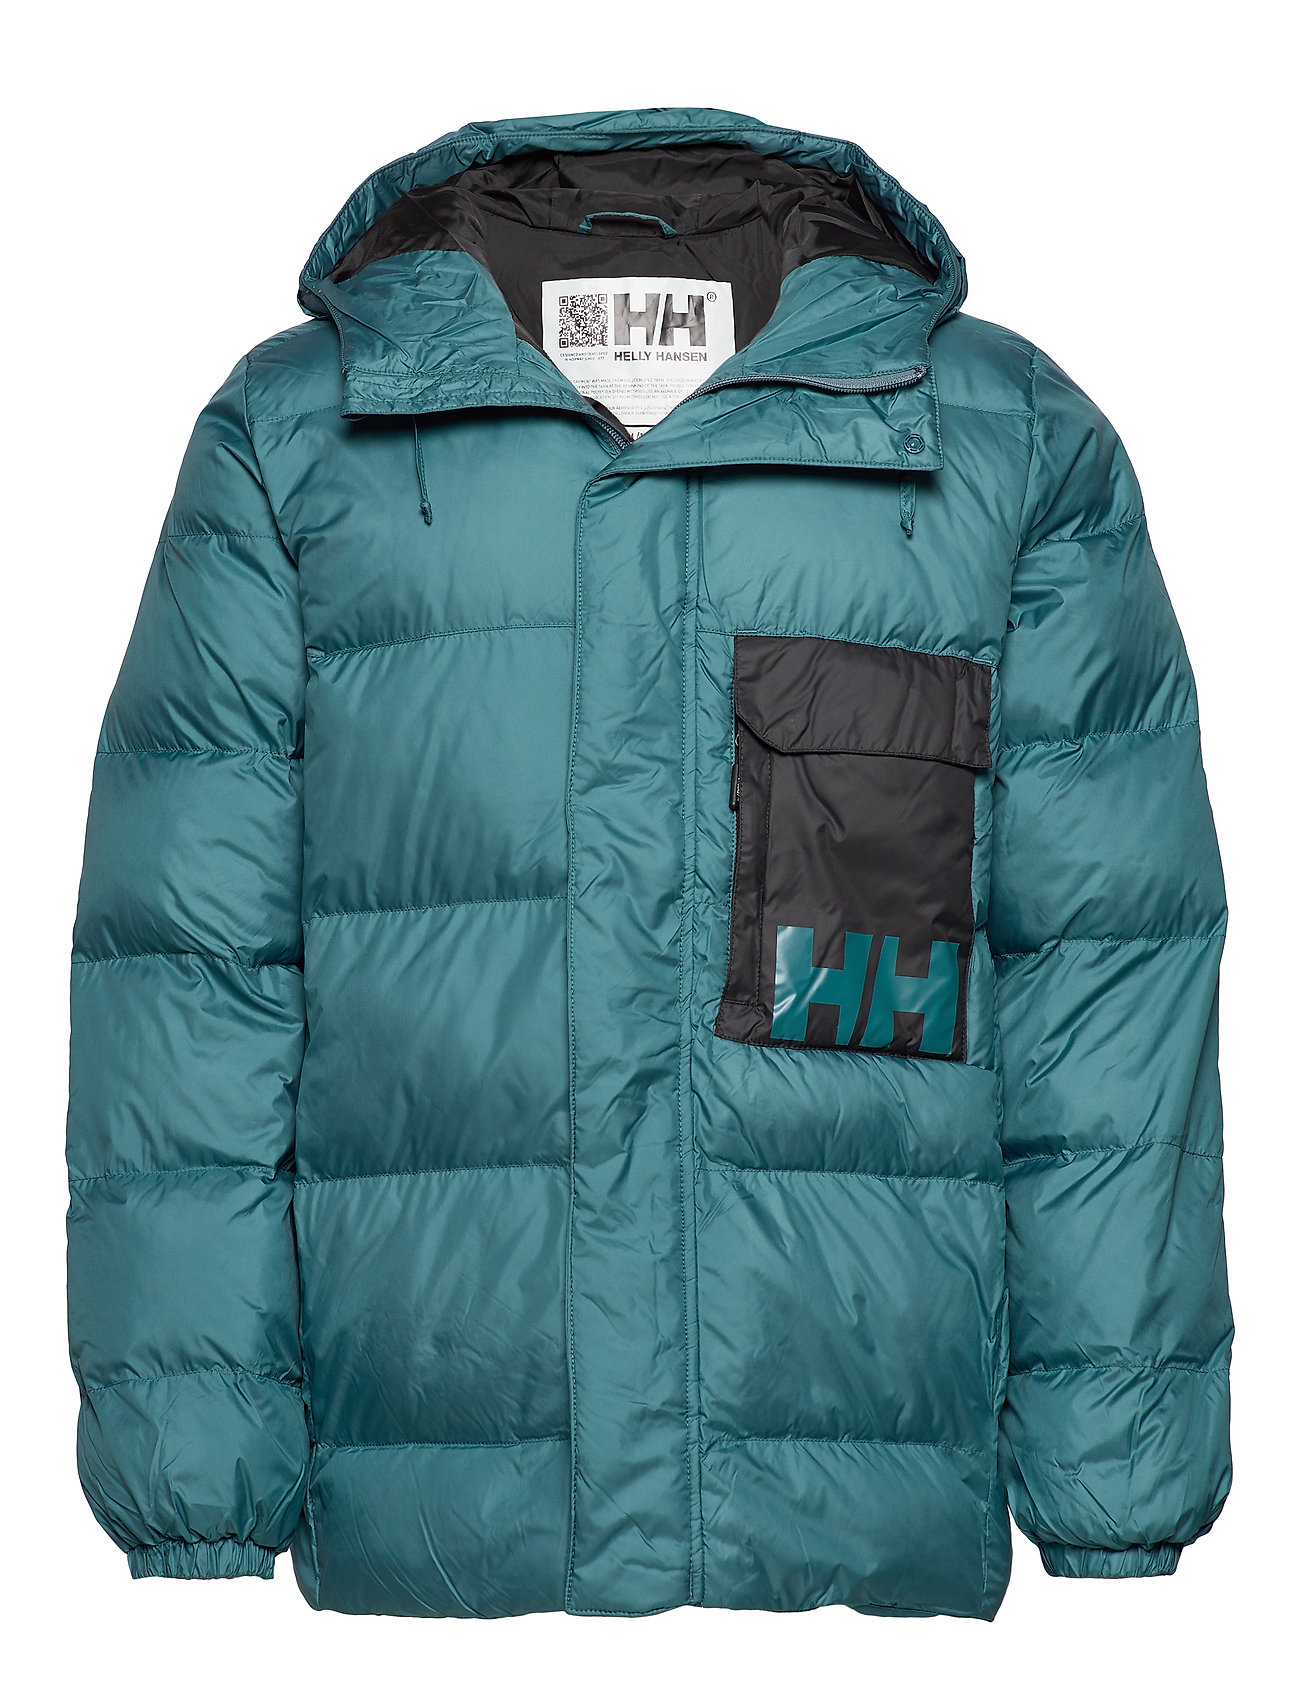 Helly Hansen P&C PUFFER JACKET - WASHED TEAL